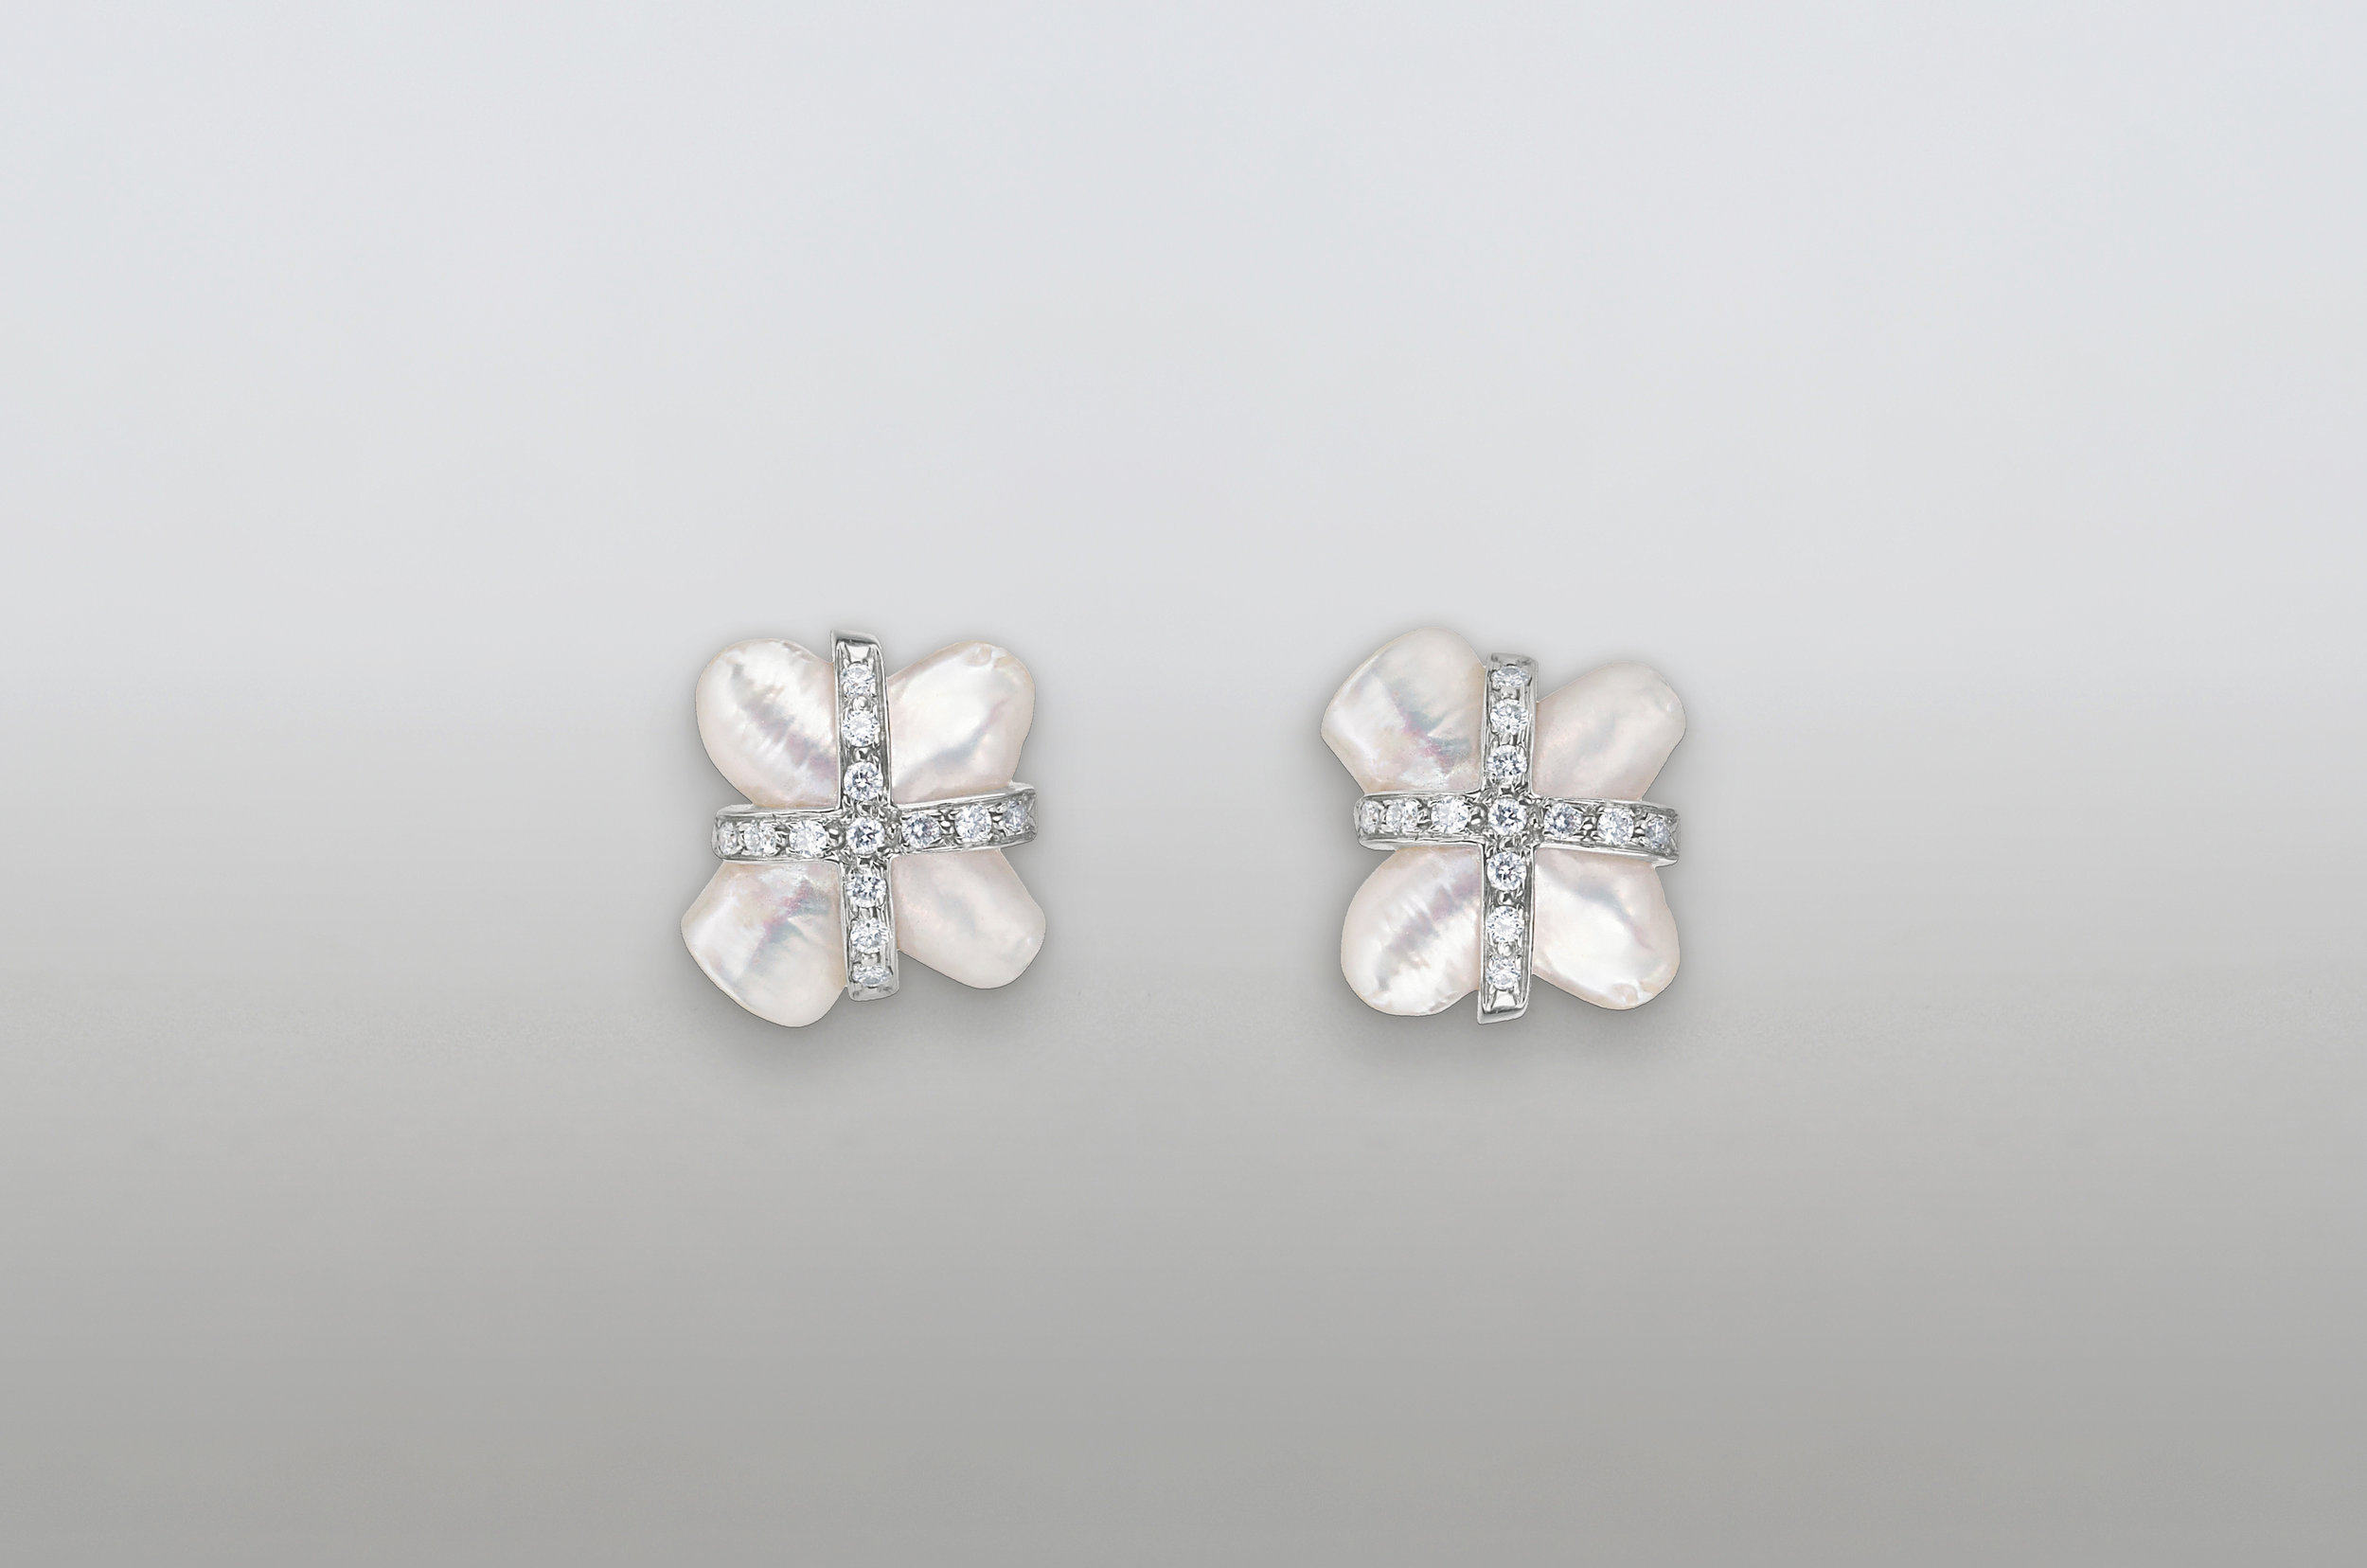 White Cross Earrings from dealer.4.jpg